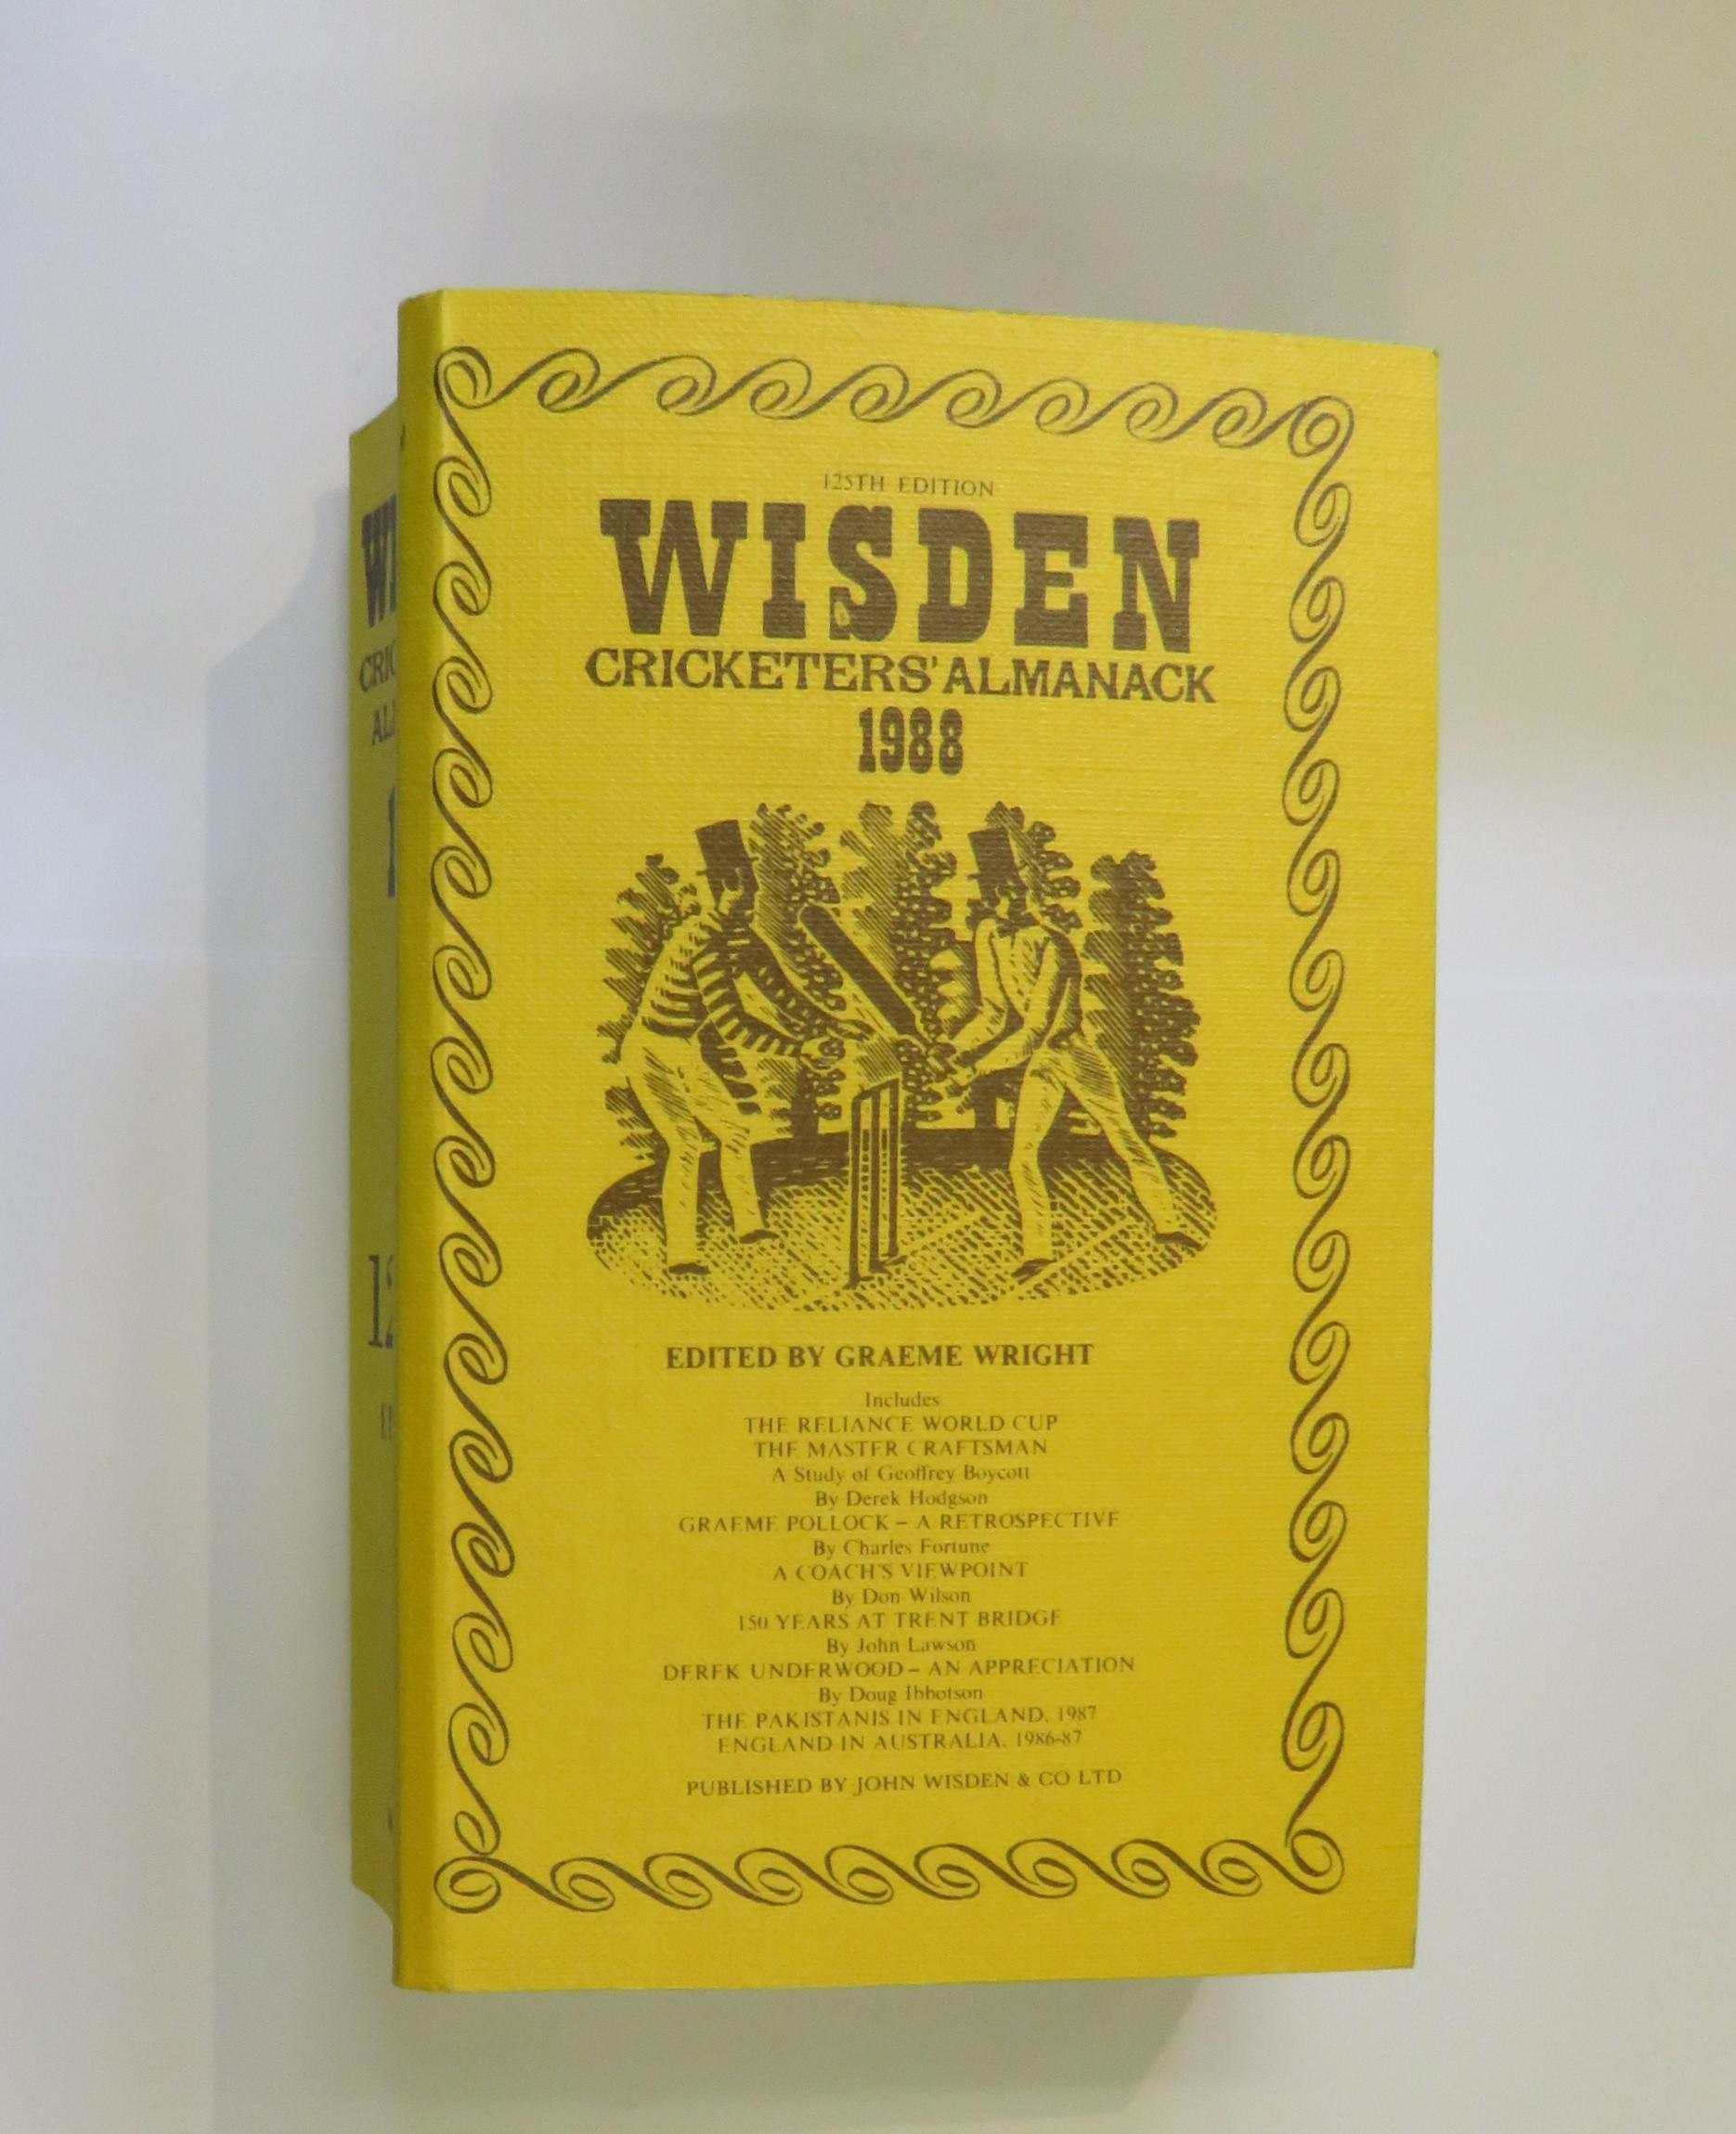 Wisden Cricketers' Almanack 1988